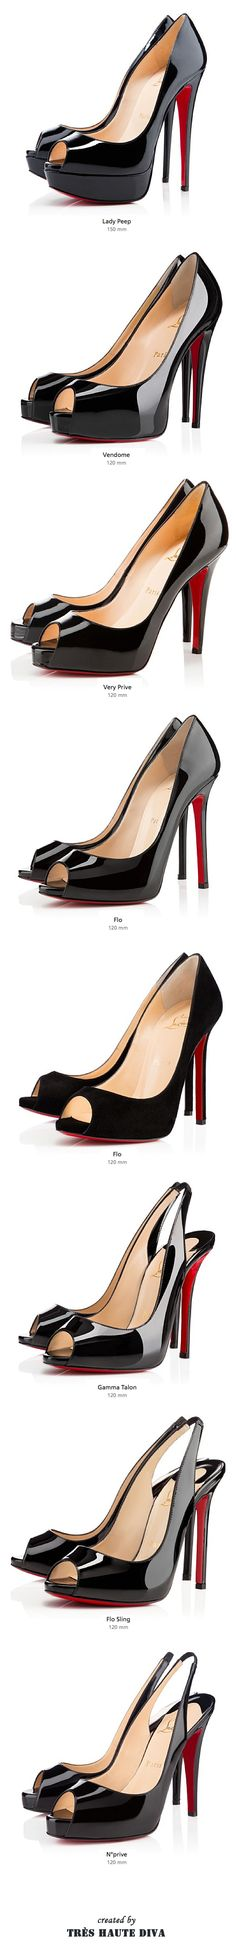 Cheap Red Bottom. Women's Fashion Dream Heels. #christianlouboutin #Christian…